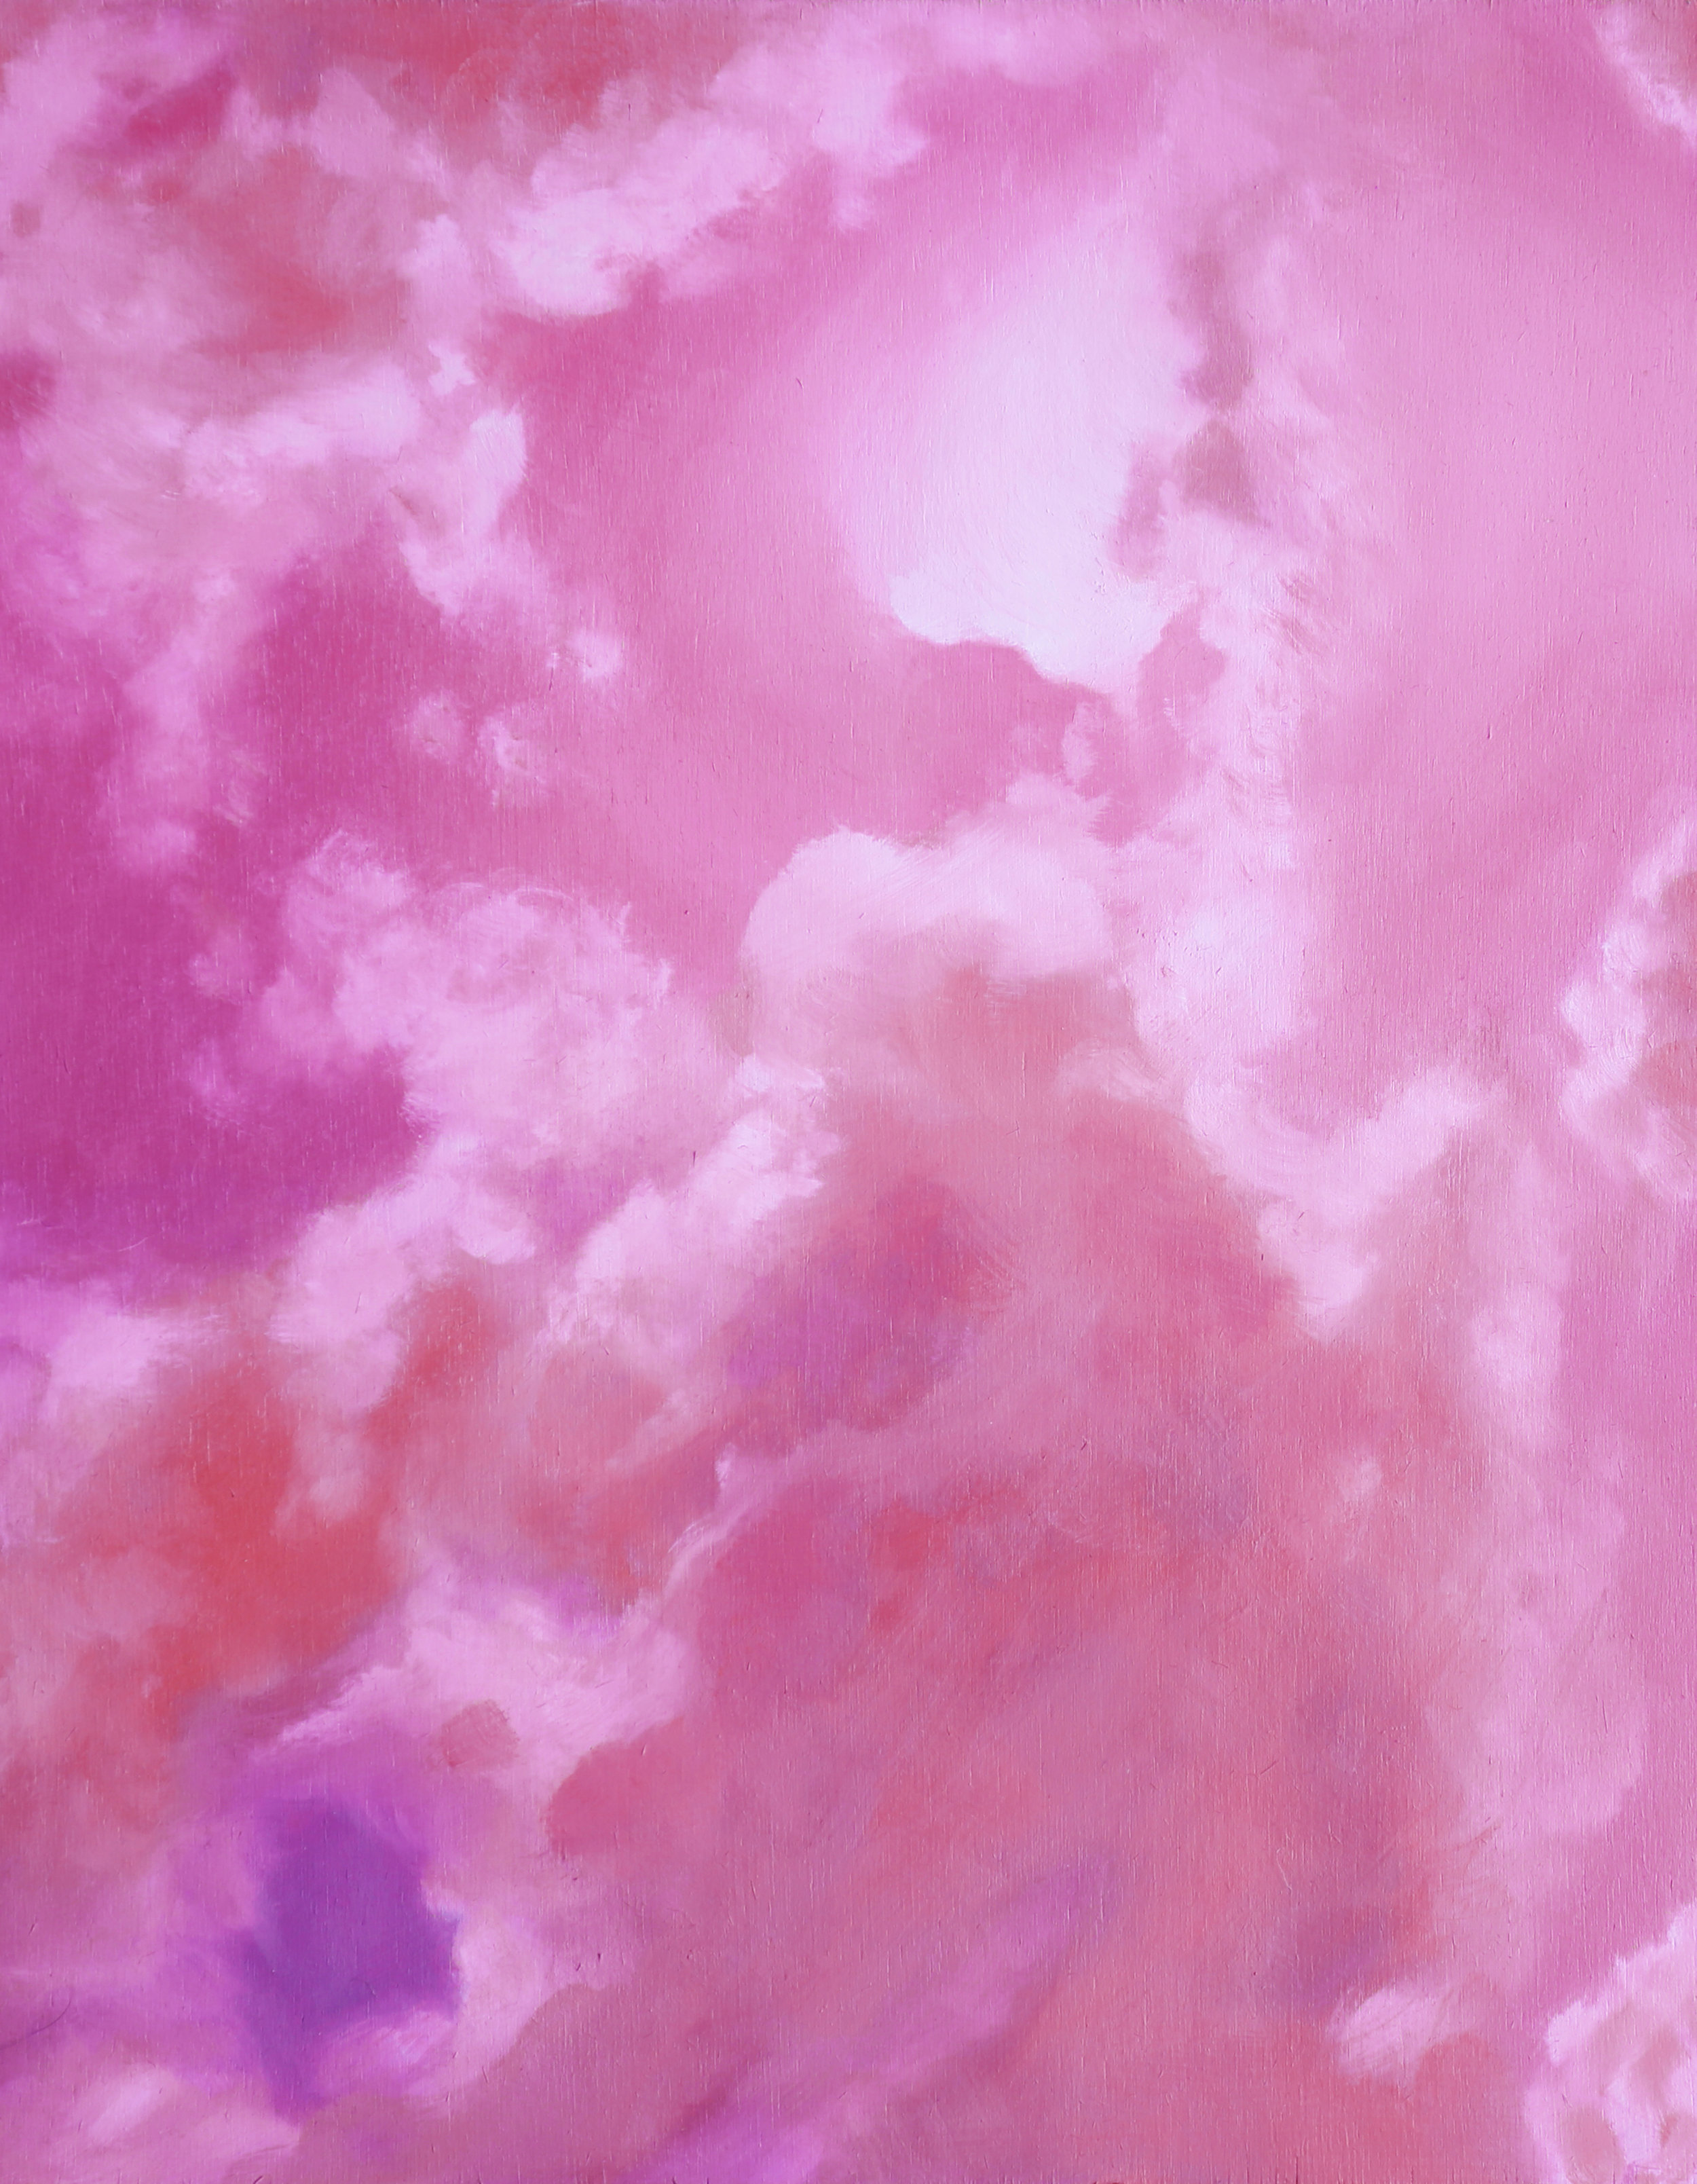 Cotton Candy Skies, 2018, Oil on wood panel